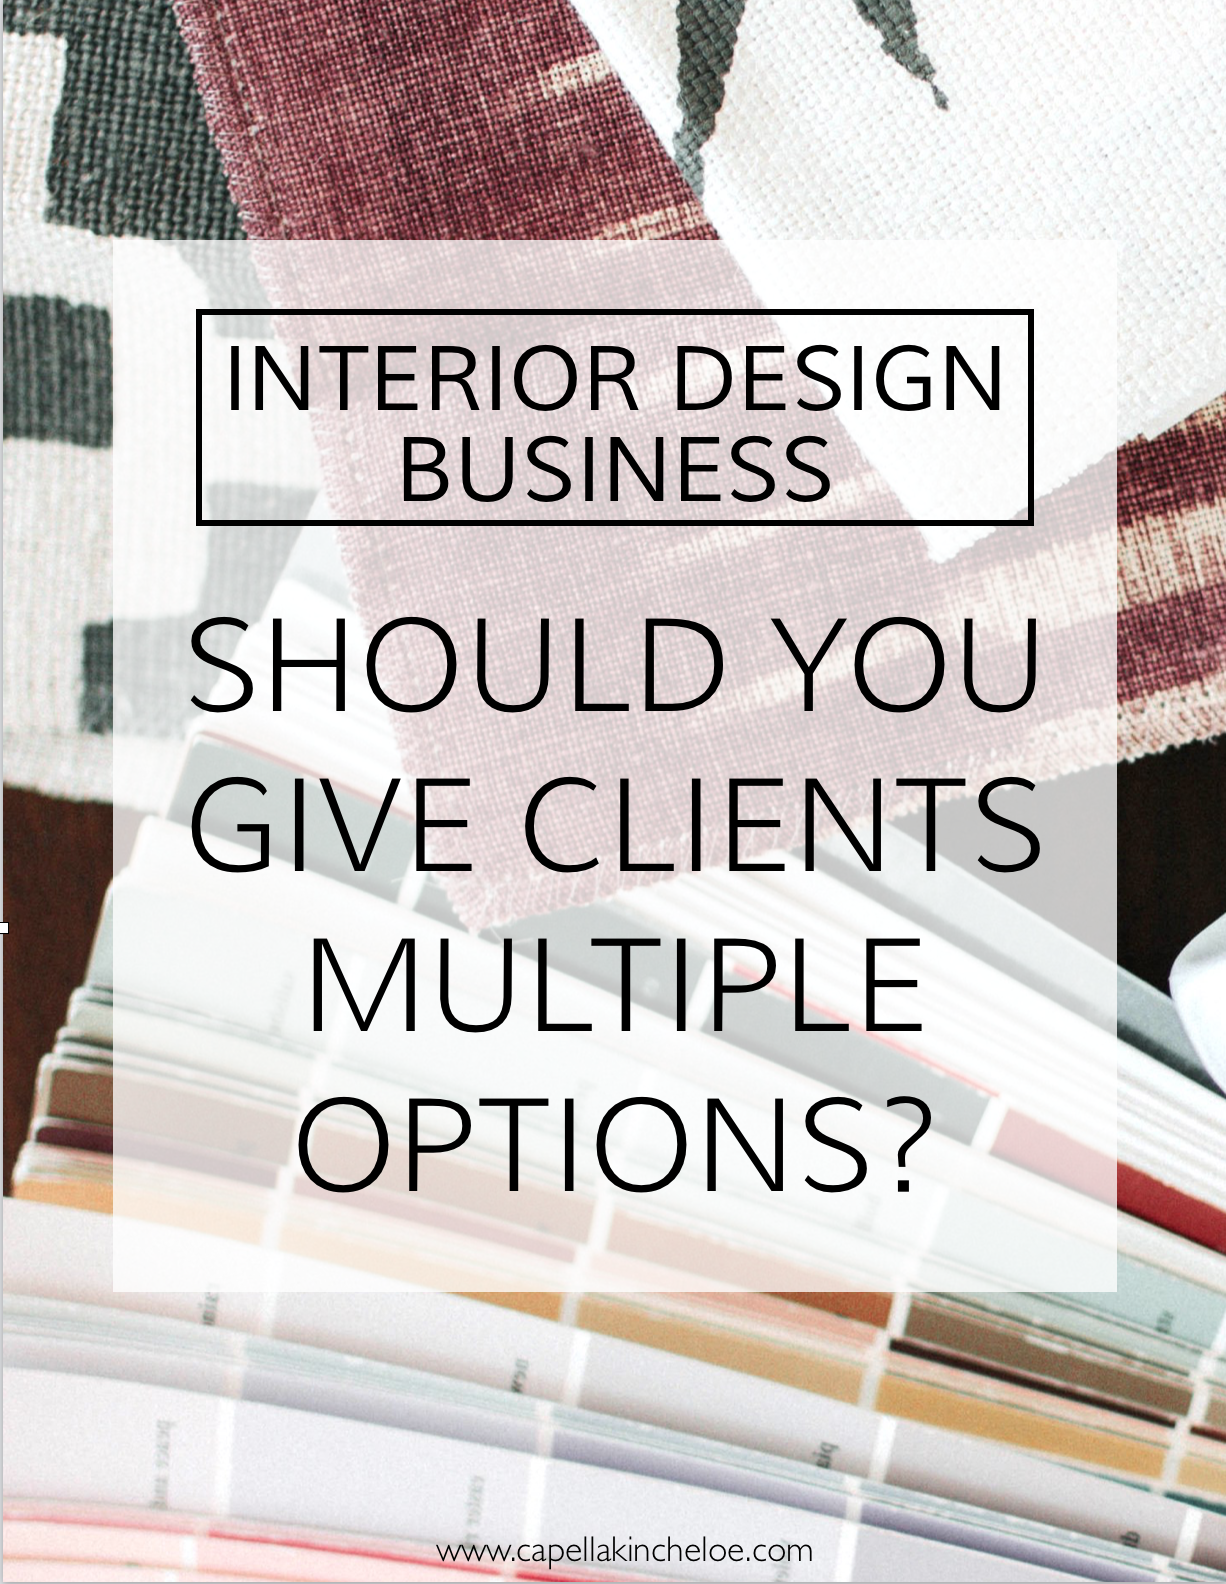 Interior Designers! Is it good to give your clients multiple options in design presentations? #interiordesignbusiness #designpresentations #cktradesecrets #collaborationovercompetition #interiordesignclients